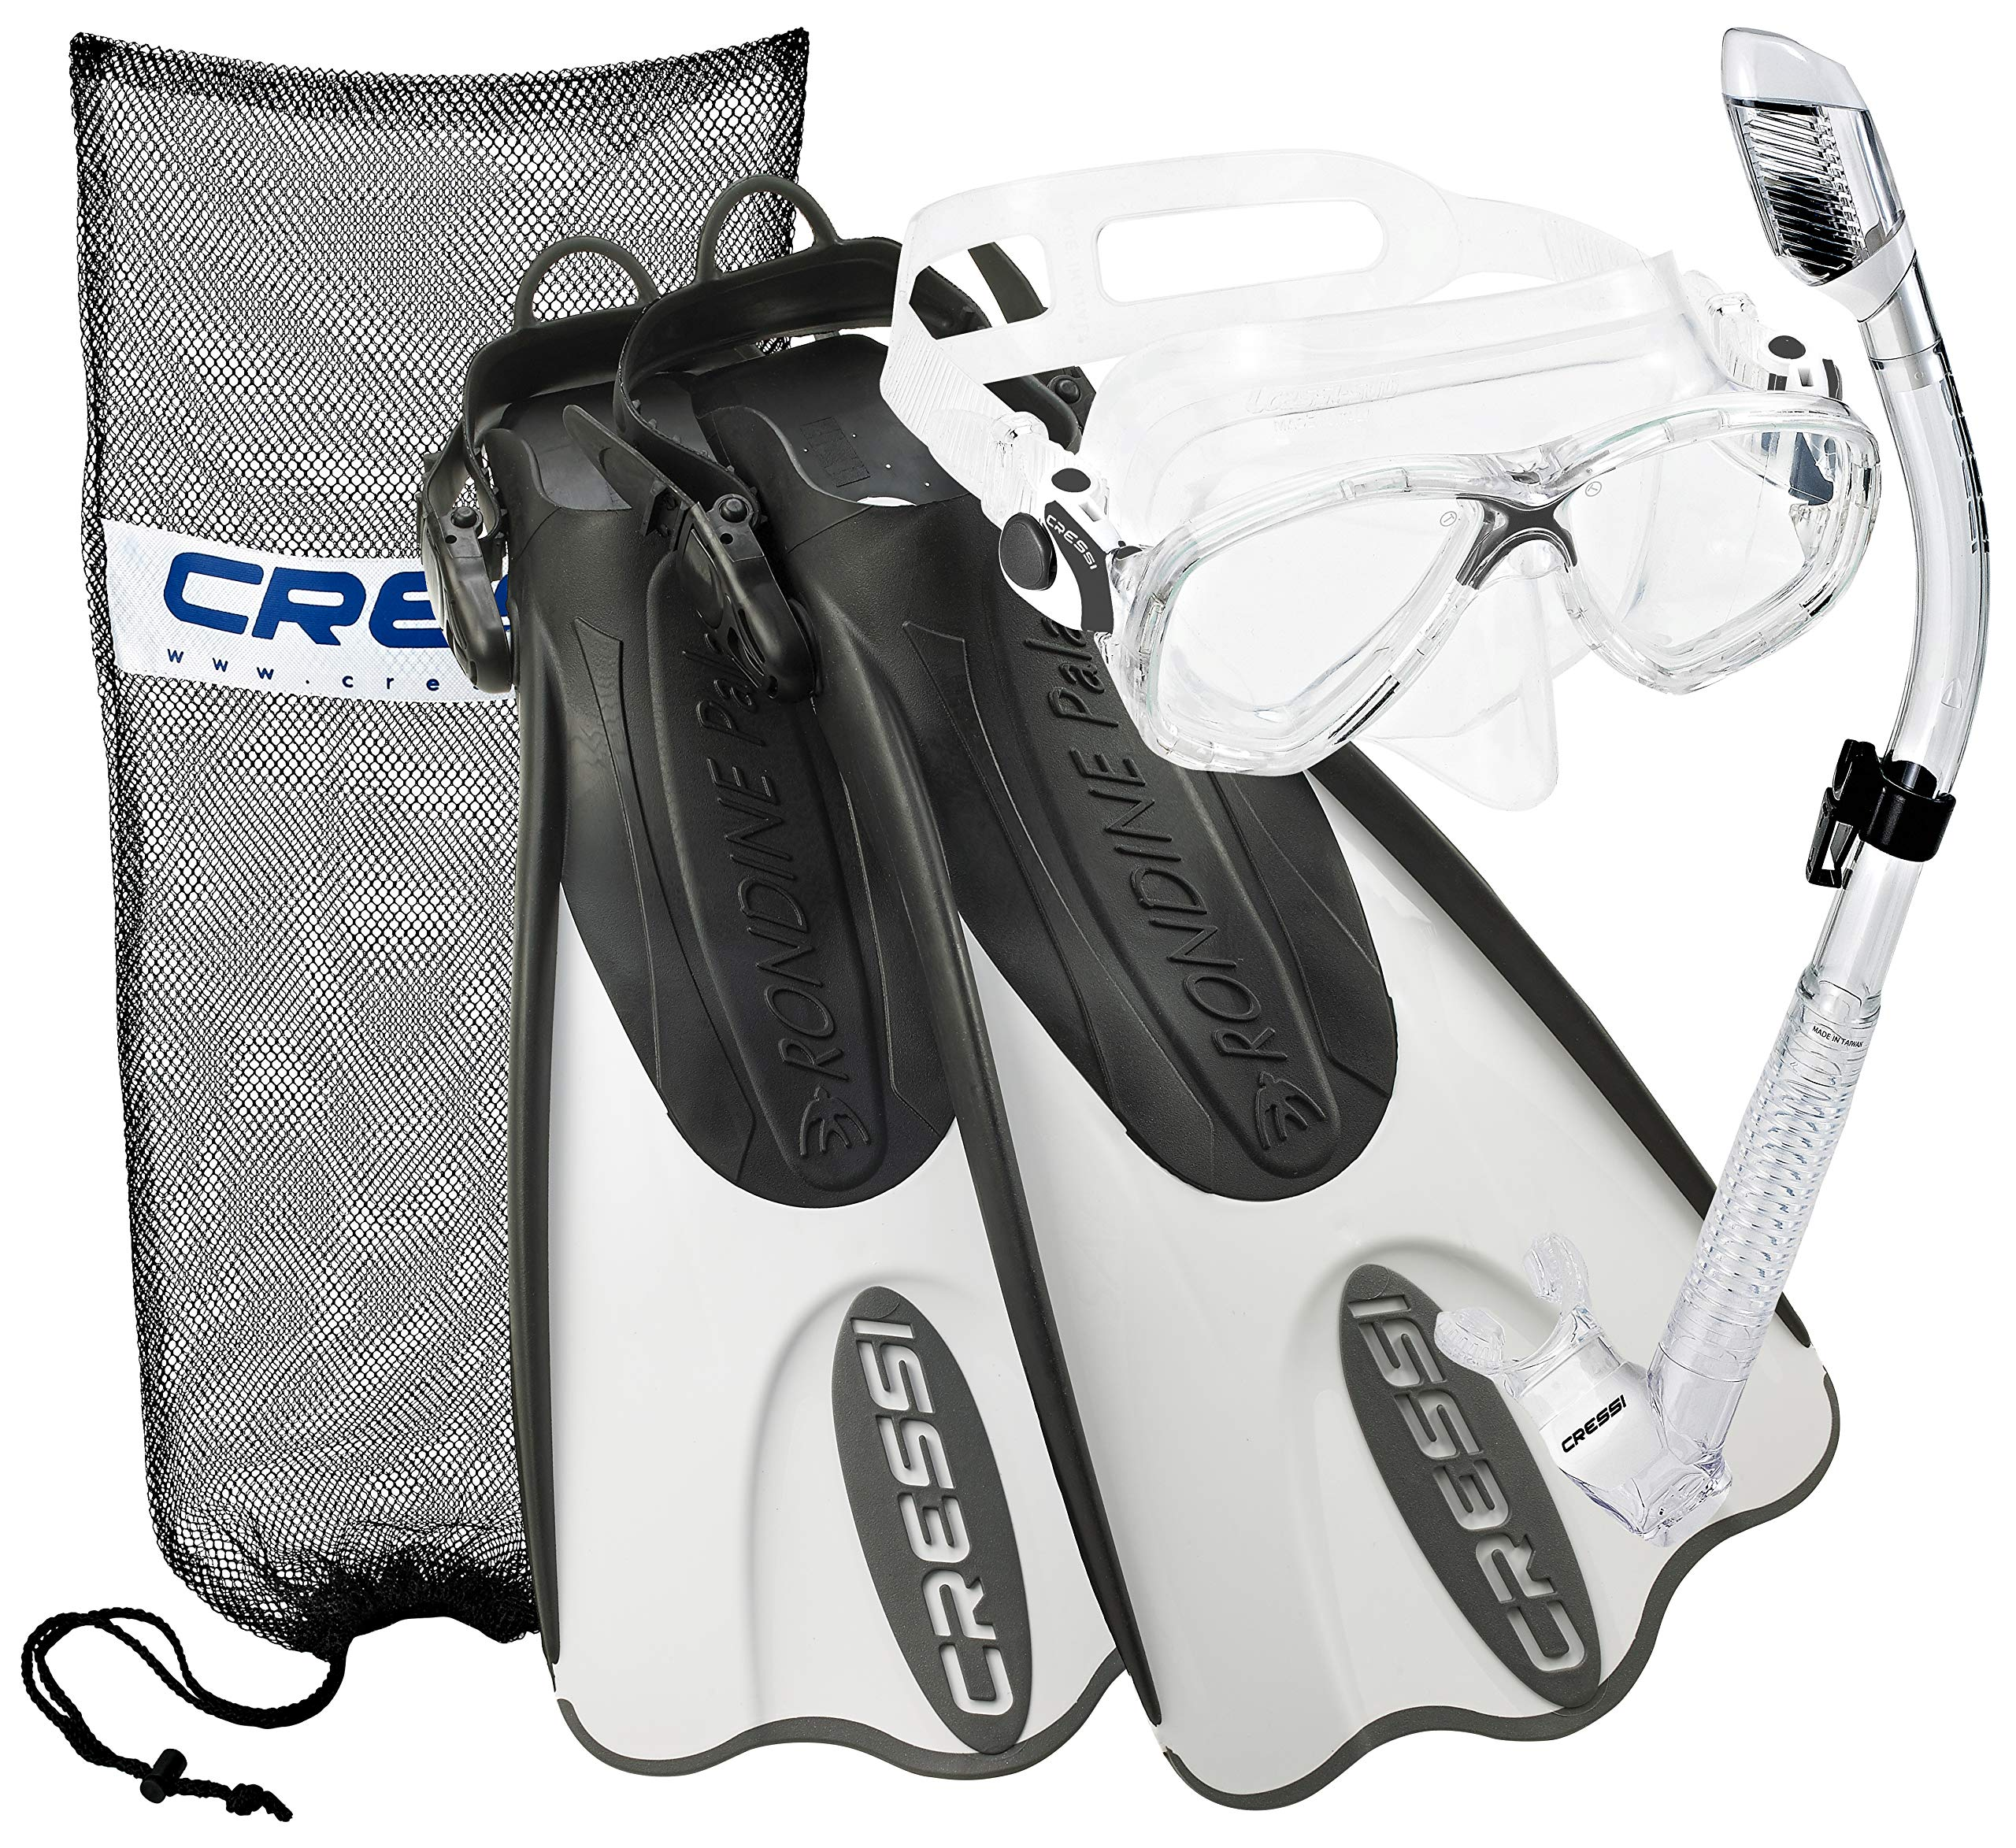 Cressi Palau Mask Fin Snorkel Set with Snorkeling Gear Bag, Designed and Manufactured in Italy (Black White, L/XL | (Mens 10-13) (Womens 11-14)) by Cressi